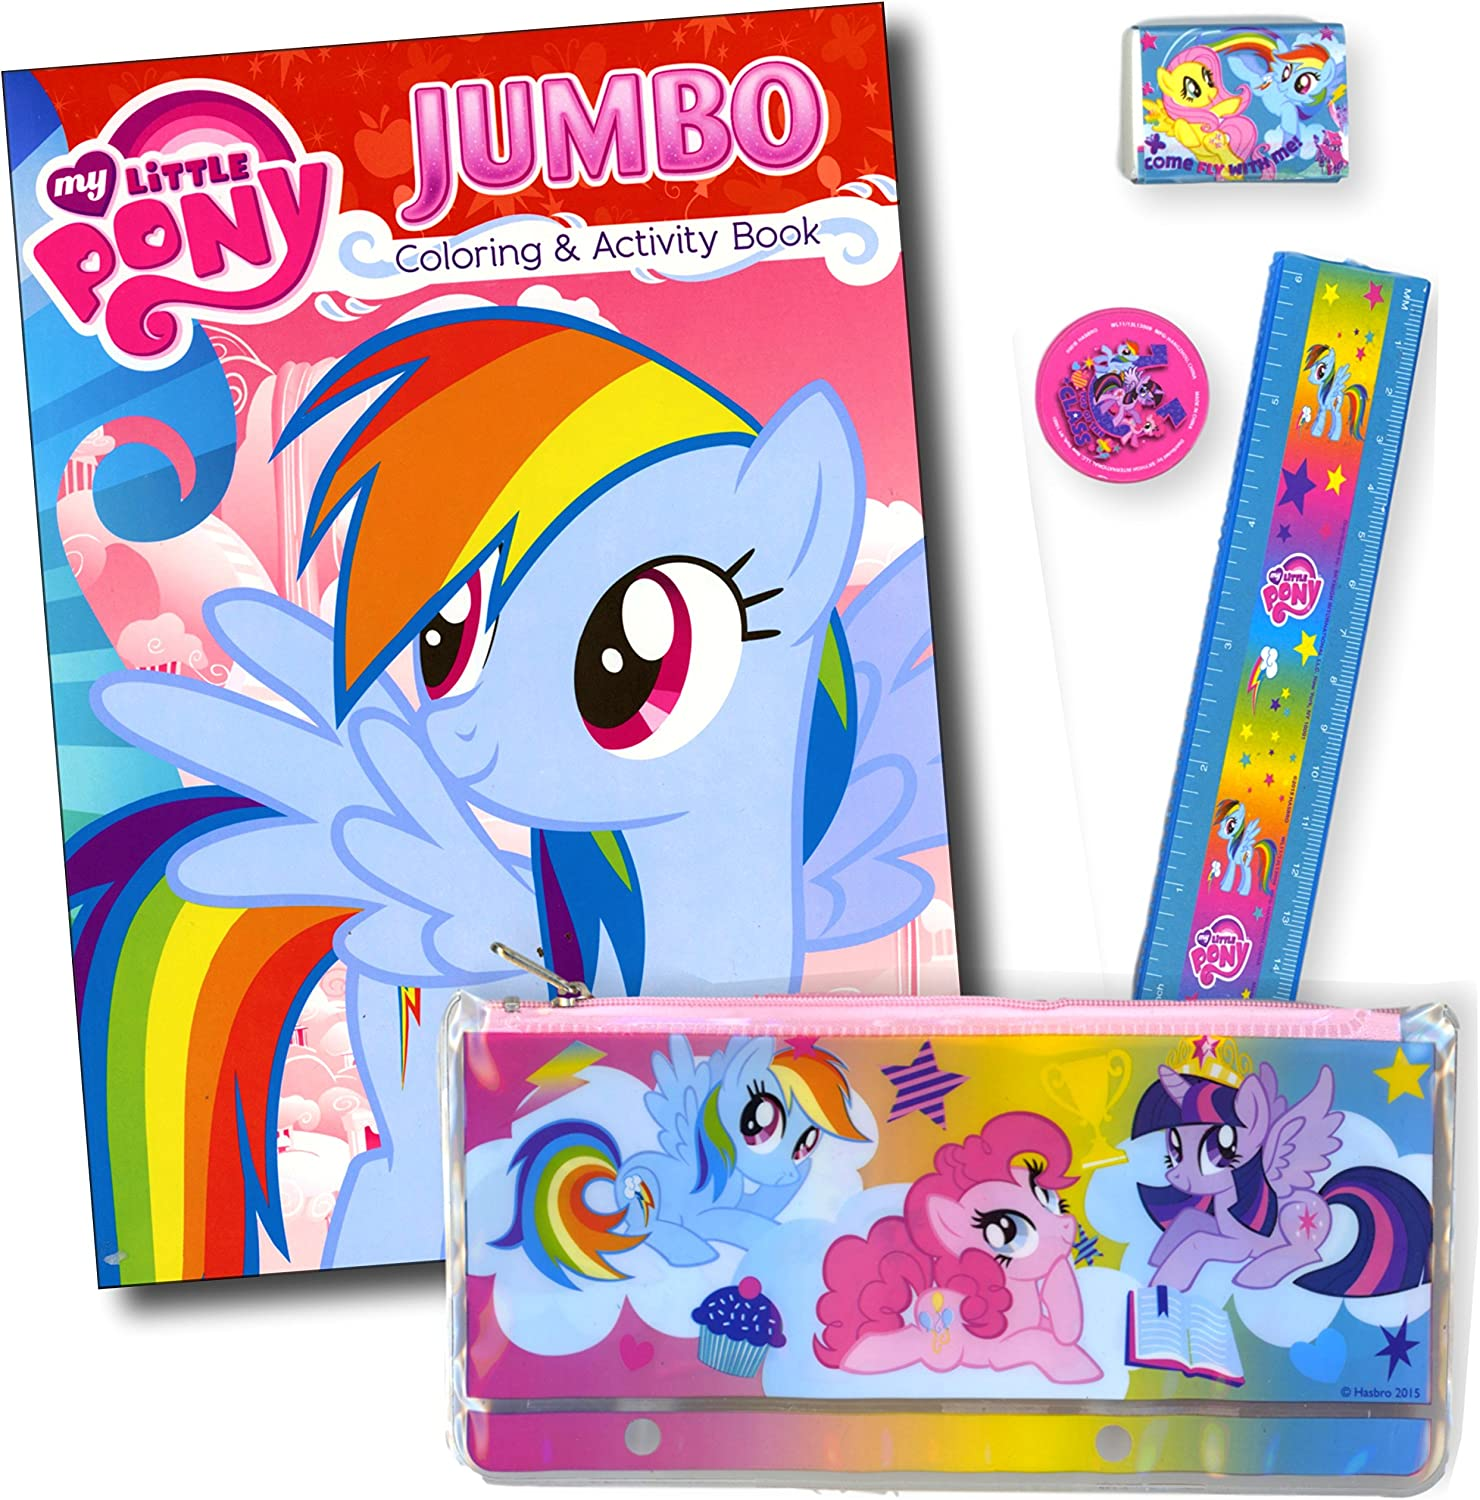 - Amazon.com: My Little Pony Coloring And Activity Book - Featuring